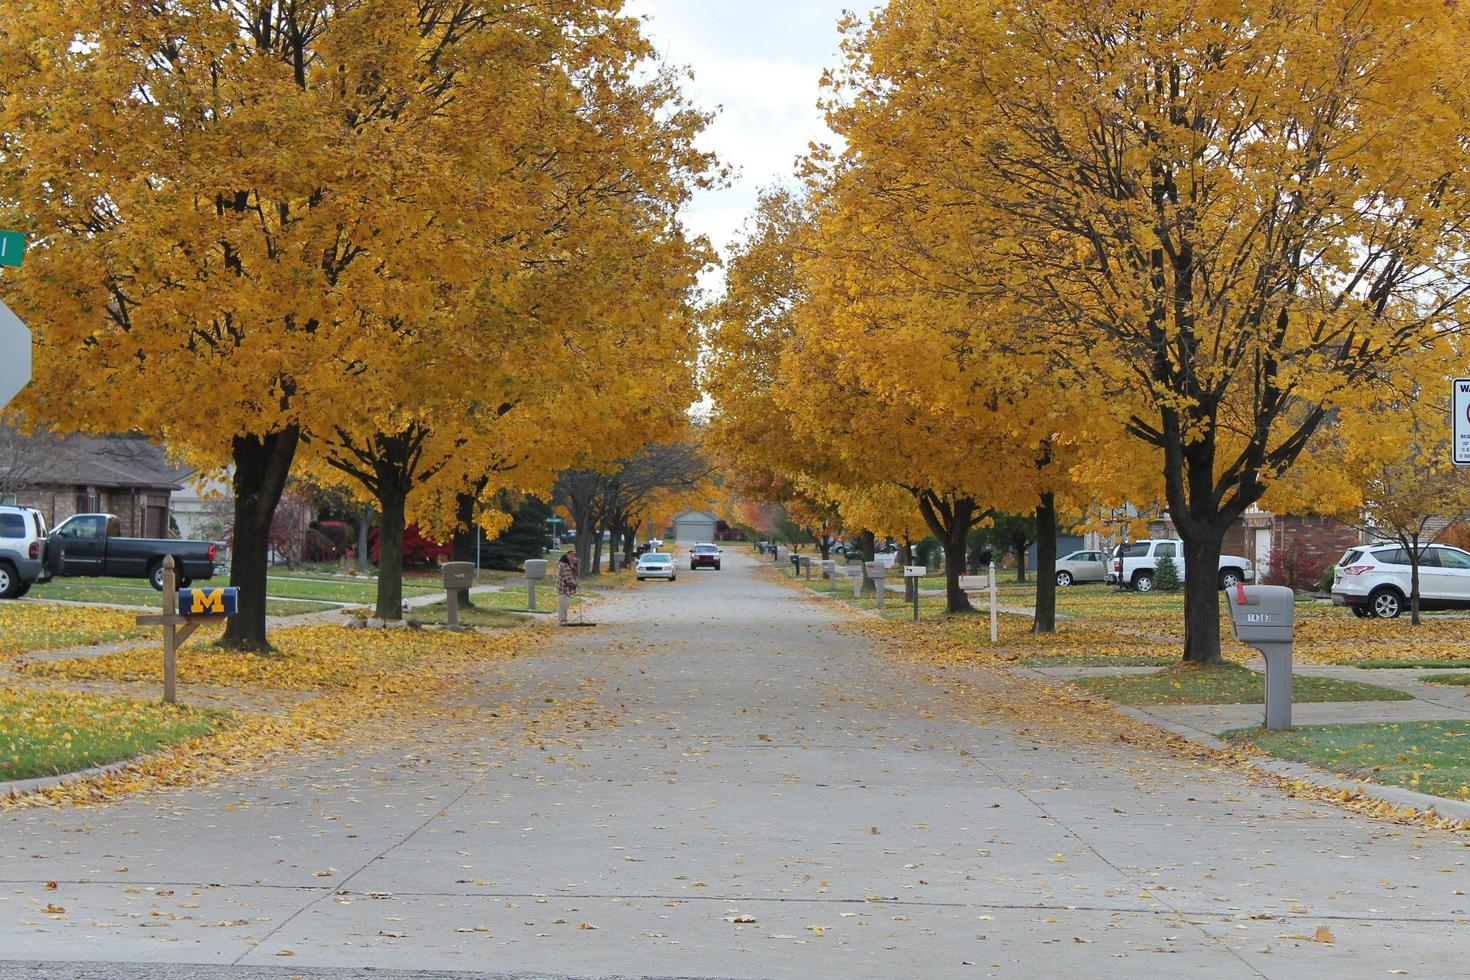 Fall leaves on the trees photo